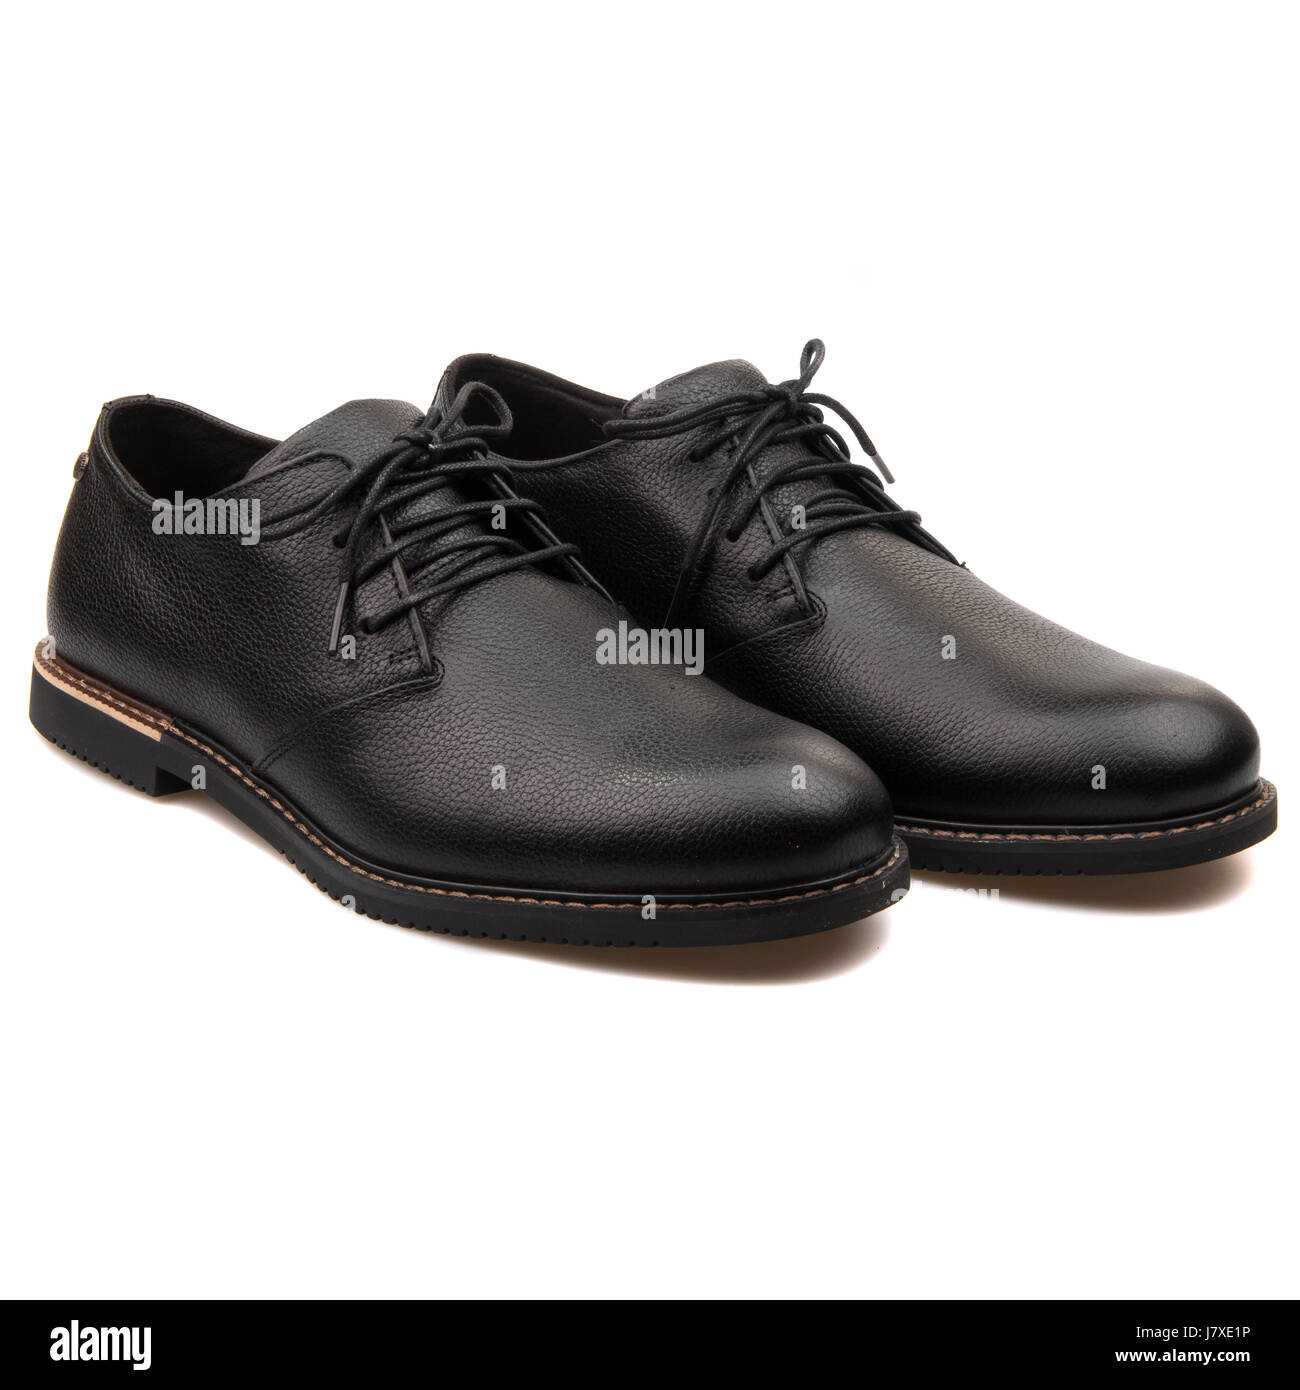 26e904d14230b Timberland Brook Park Men s Black Leather Waterproof Oxford Shoes -A127L -  Stock Image